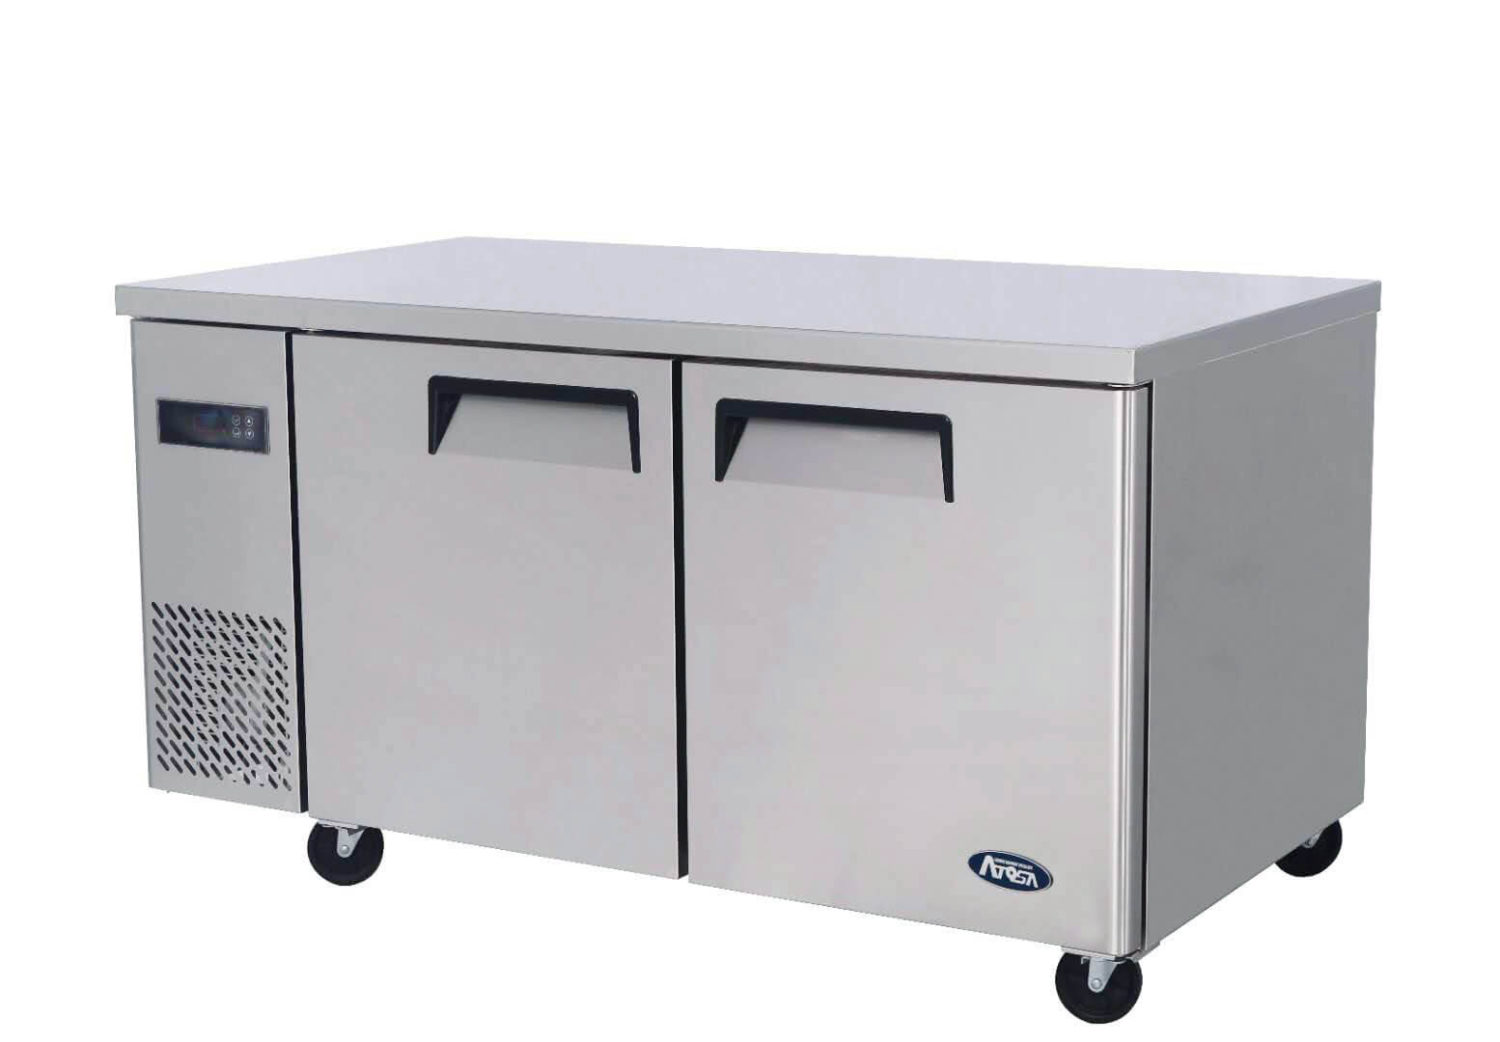 Atosa YPF9035 Undercounter Freezer 1500 mm